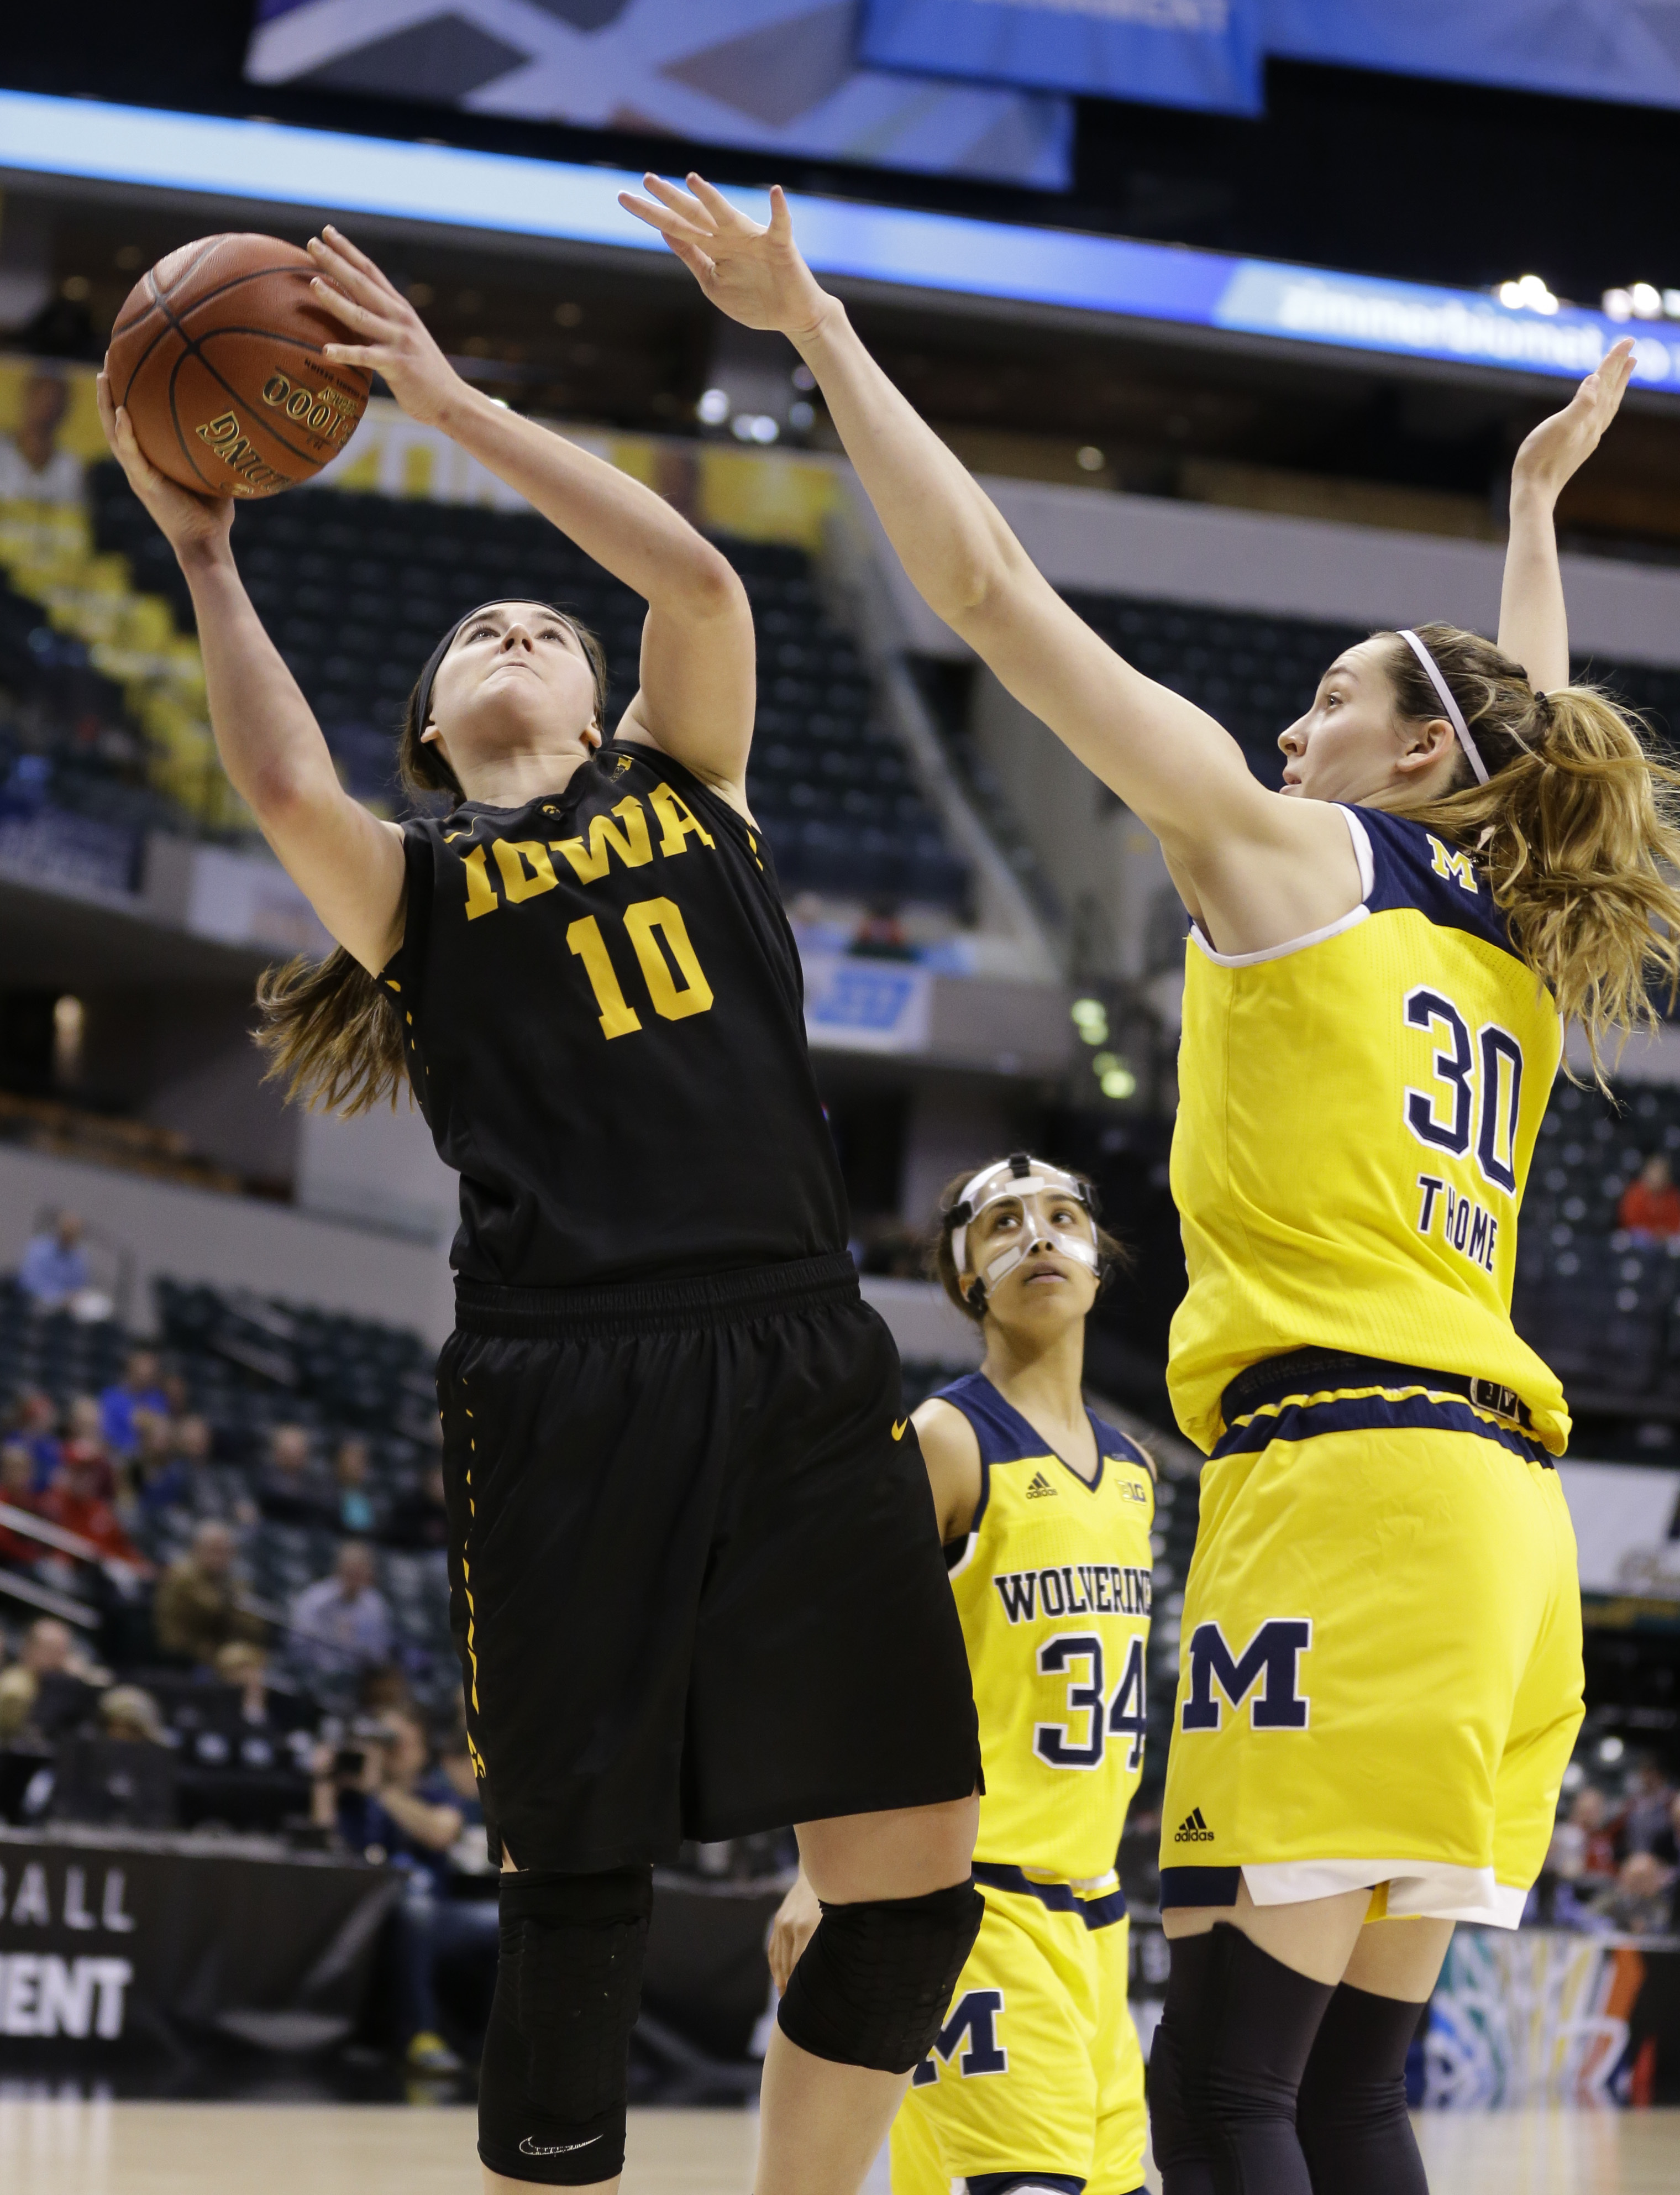 Iowa's Megan Gustafson (10) shoots over Michigan center Hallie Thome (30) in the second half of an NCAA college basketball game at the Big Ten Conference tournament in Indianapolis, Thursday, March 3, 2016. Iowa defeated Michigan 97-85. (AP Photo/Michael